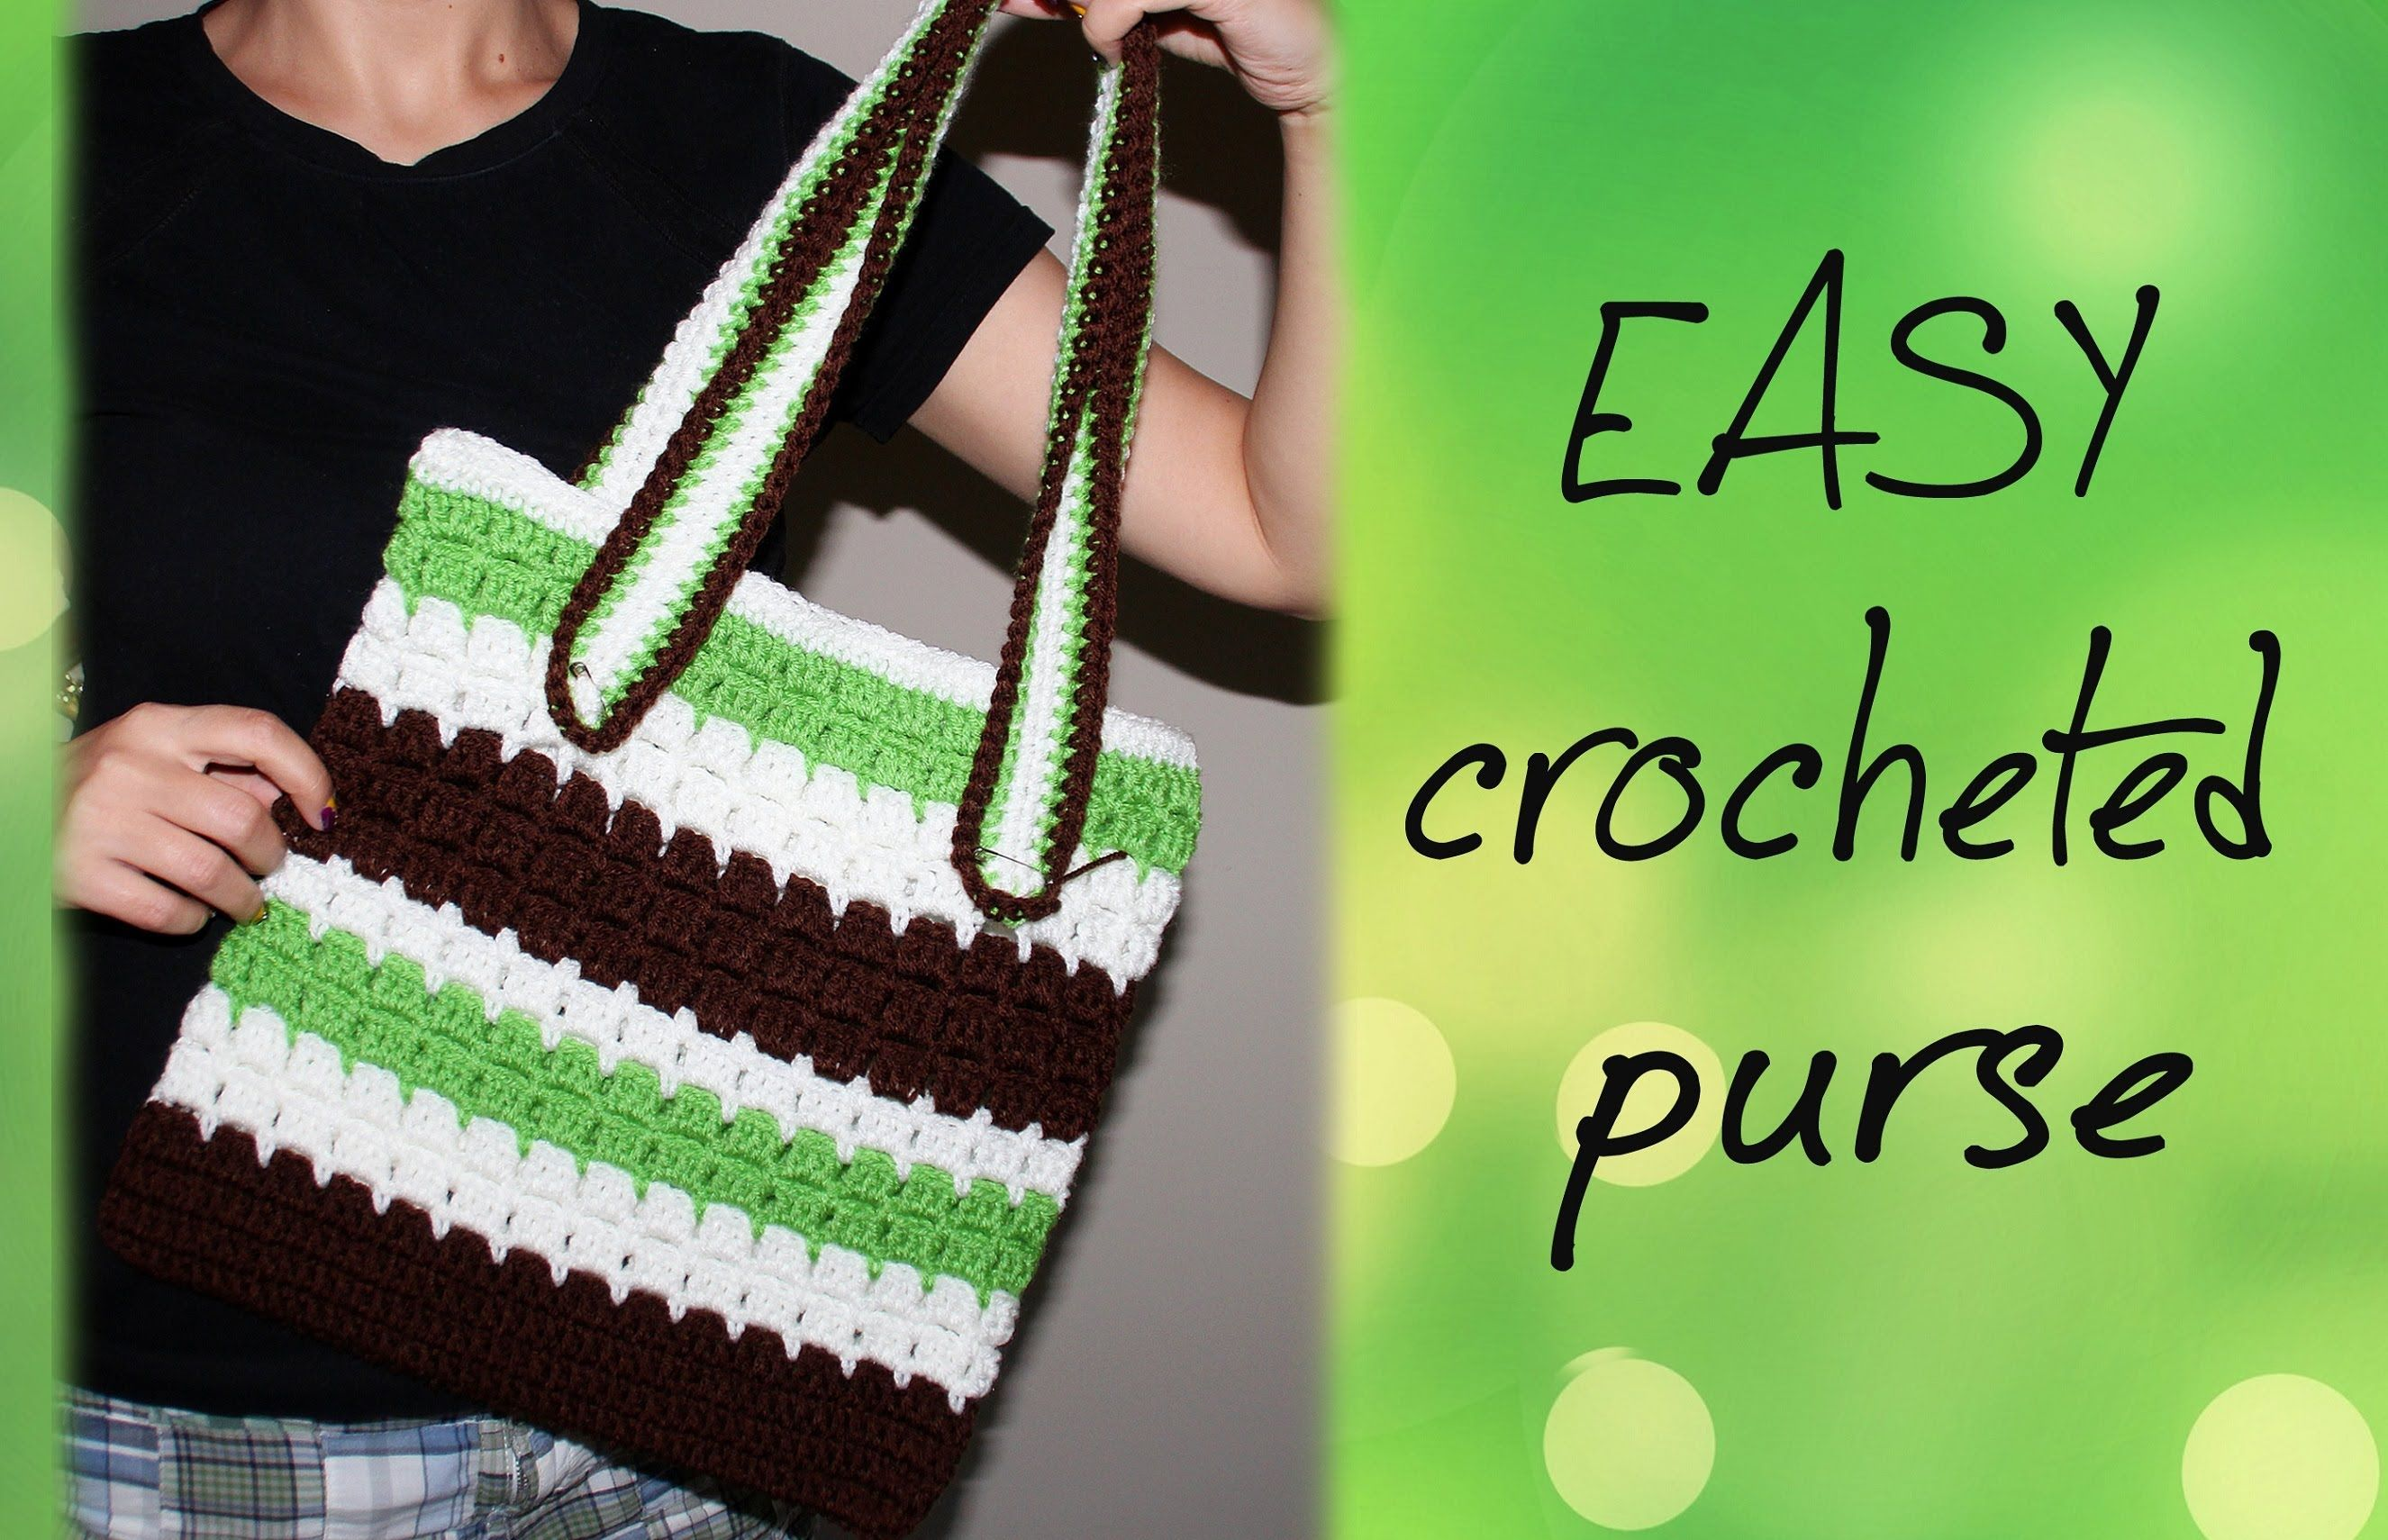 good video to watch Learn how to crochet a purse. Use this pattern ...